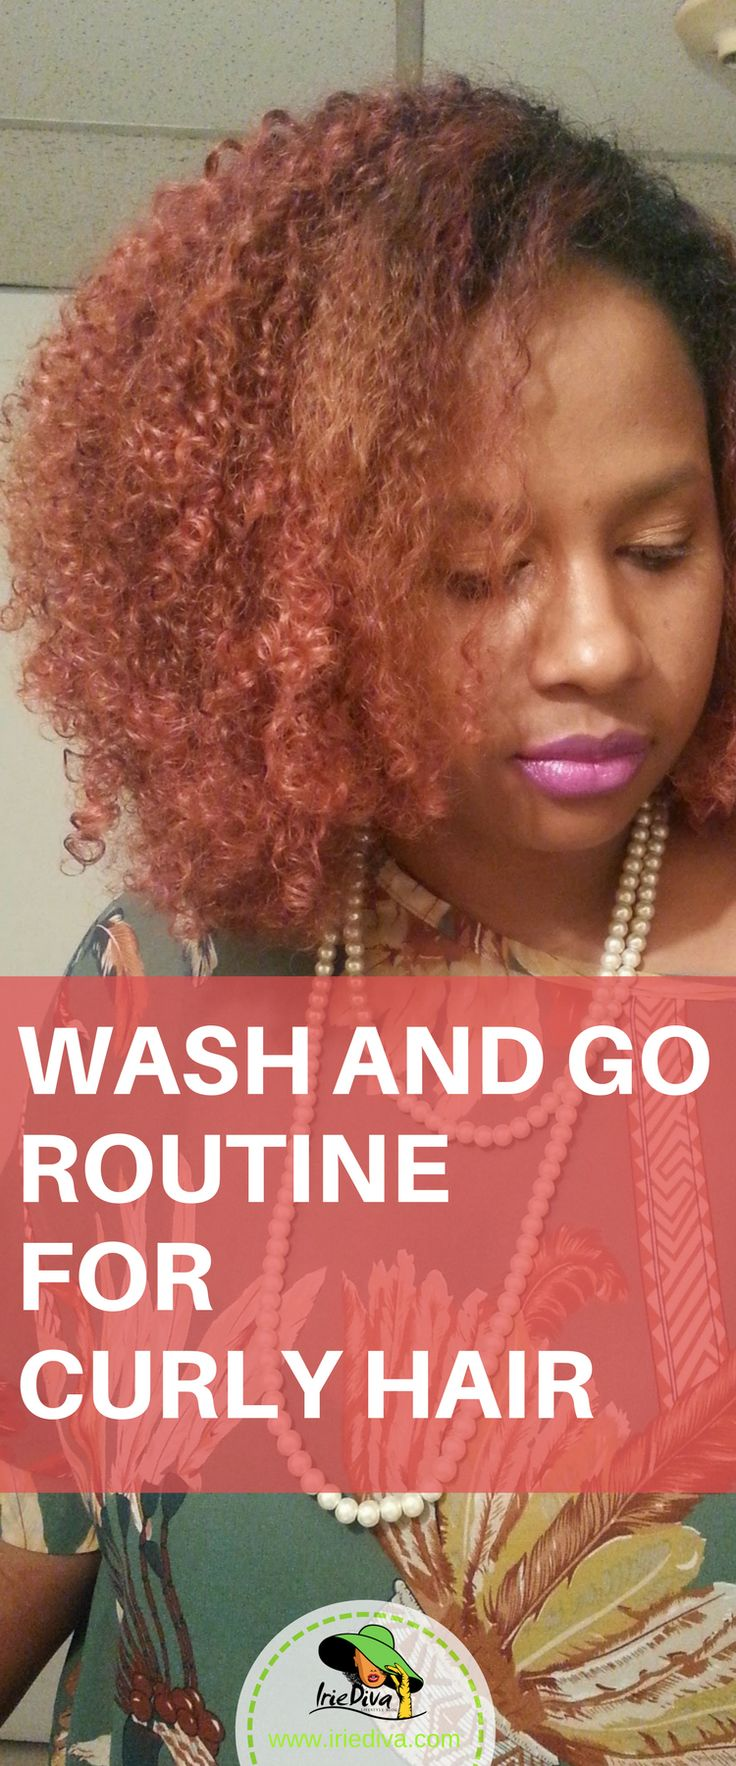 Wash and go routine for soft, bouncy, shiny, natural hair curls. #naturalhair #washandgo #redhair #curlyhair